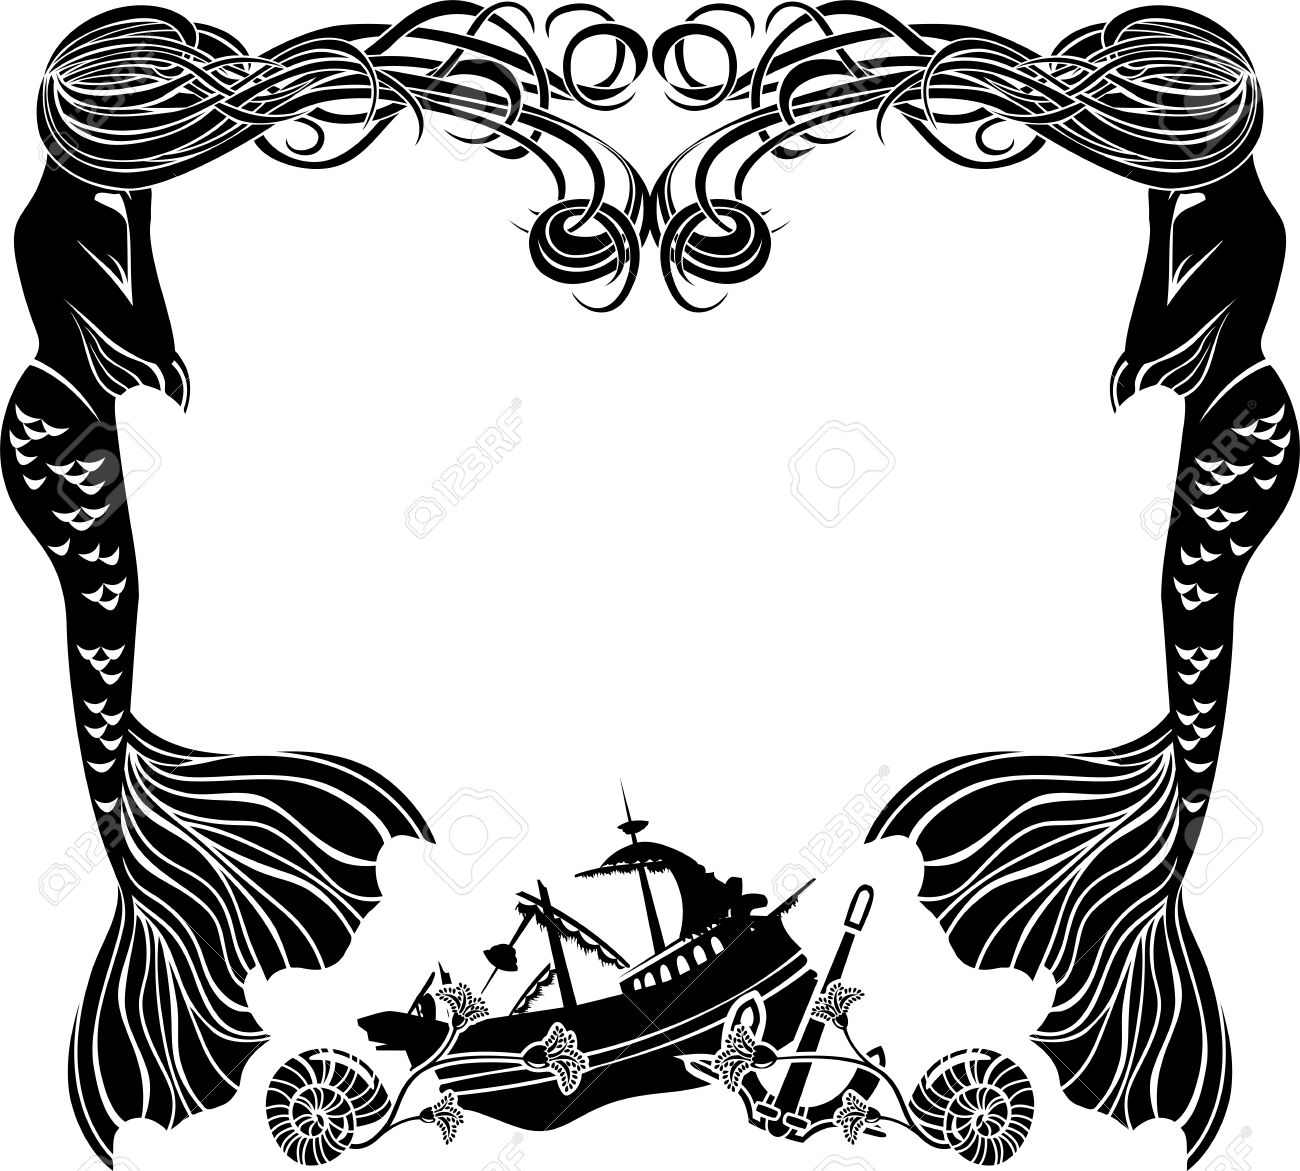 Frame, Mermaids Weep Shipwreck, Stencil For Sticker Royalty Free ...